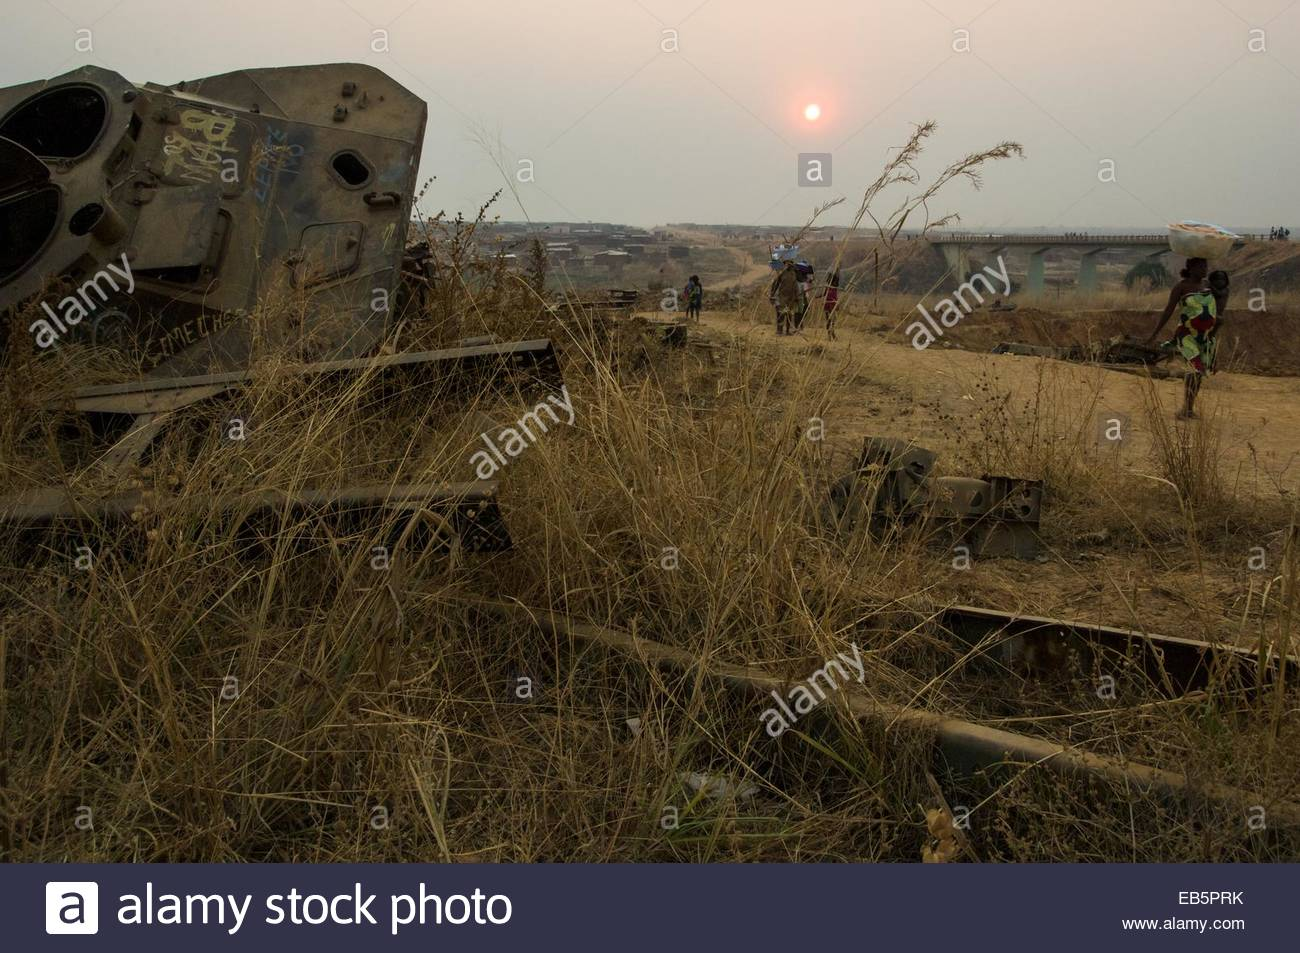 An abandoned Armoured vehicle from the Angolan civil war in the town of Menongue in the south of Angola. - Stock Image